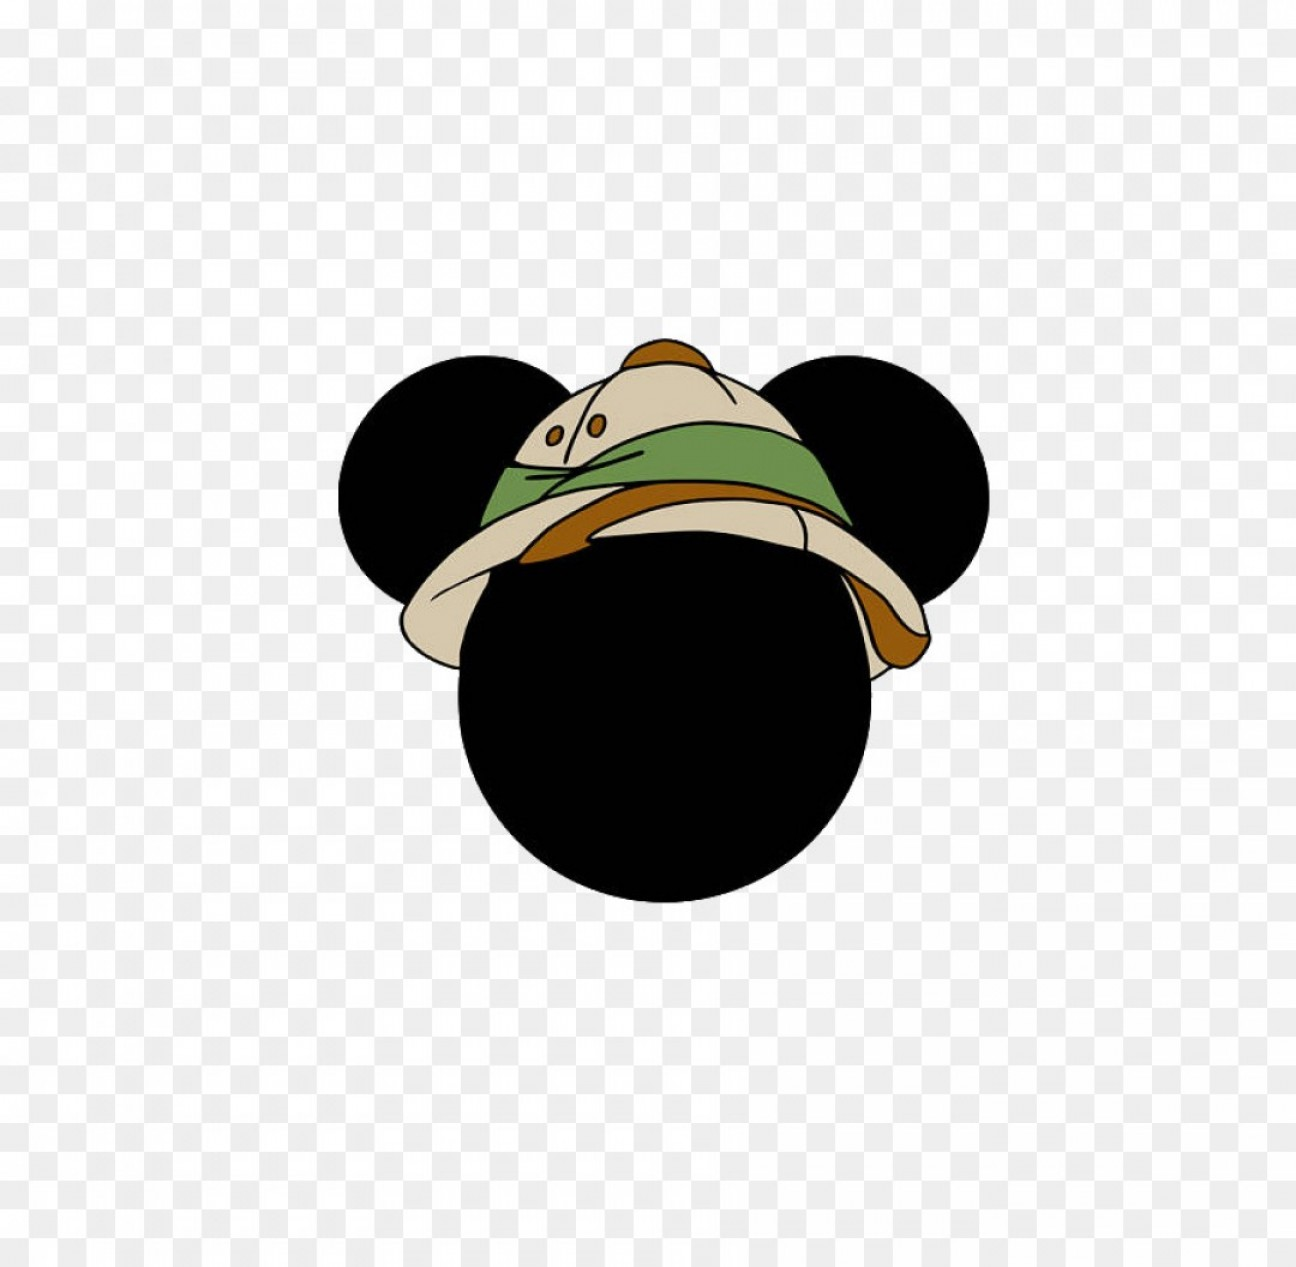 Blackhawk Vector MedVac: Png Minnie Mouse Mickey Mouse Scalable Vector Graphics